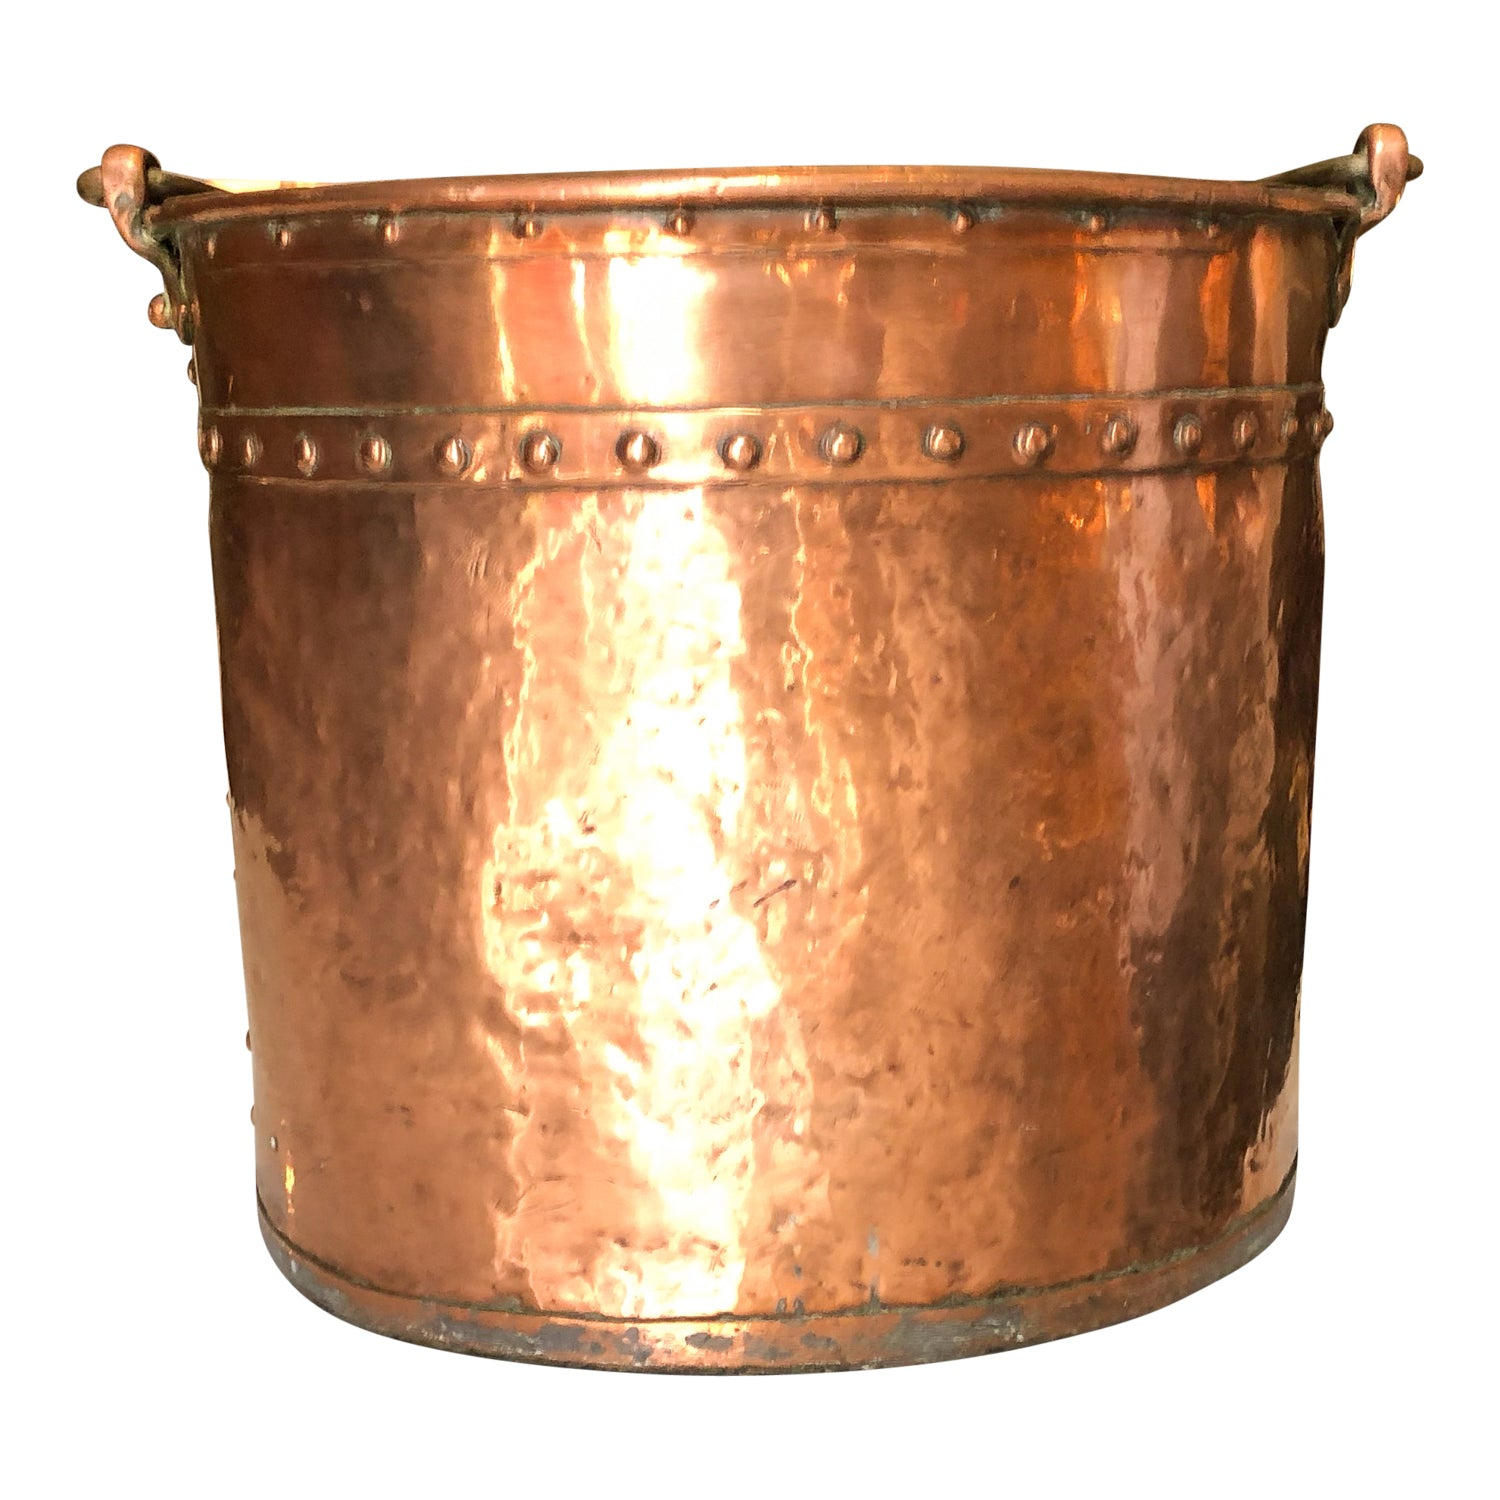 Copper Apple Kettle